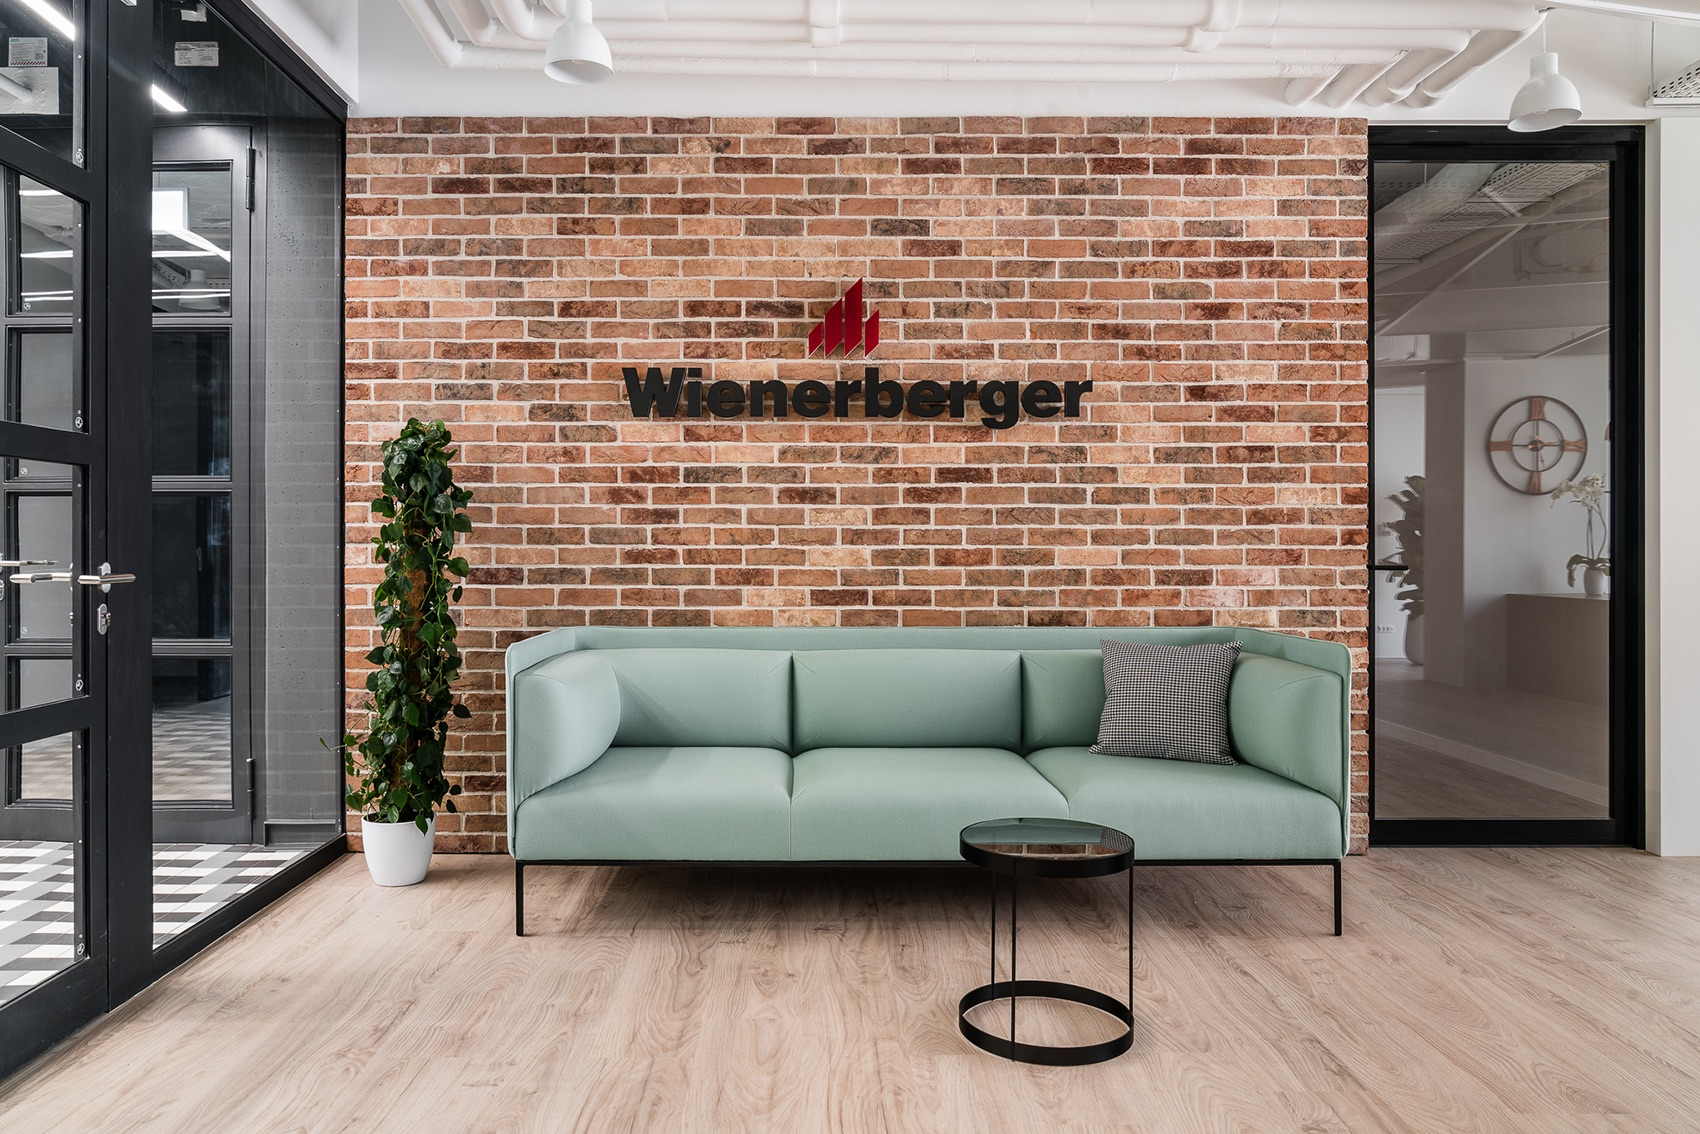 wienerberger-office-1